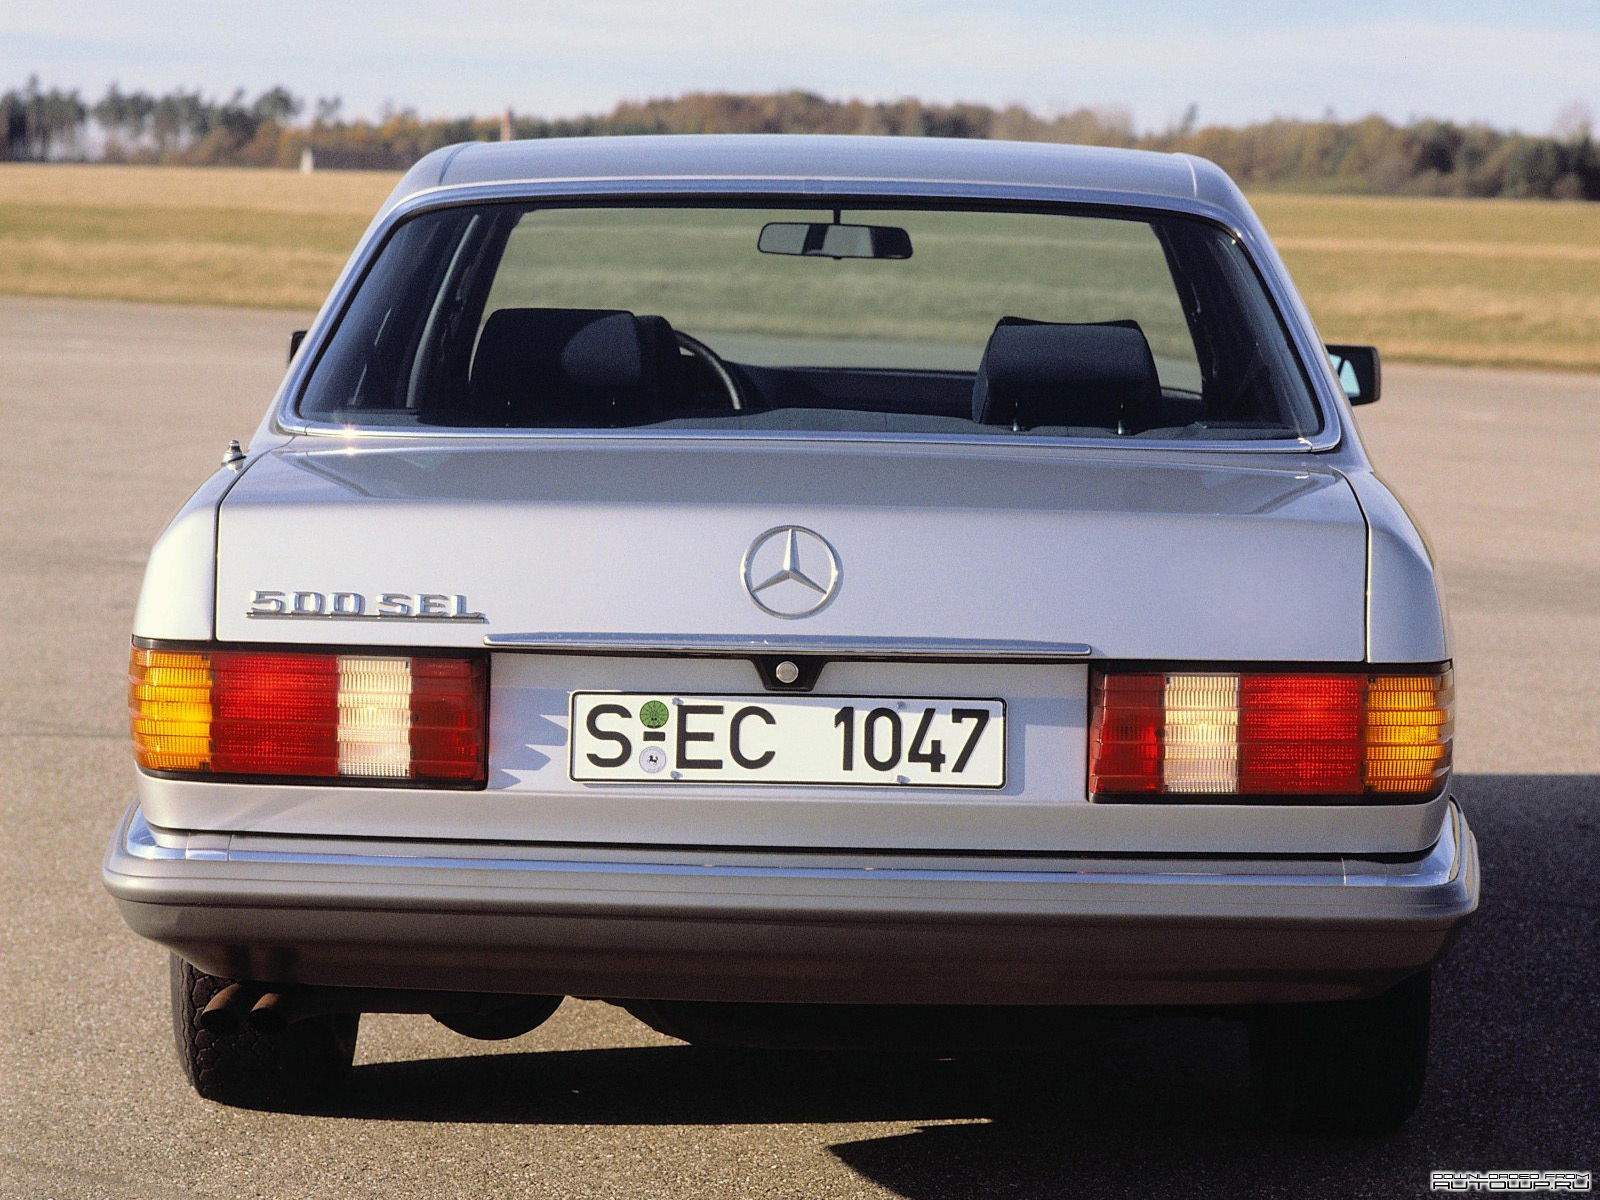 Mercedes-Benz S-Class W126 photo 76830